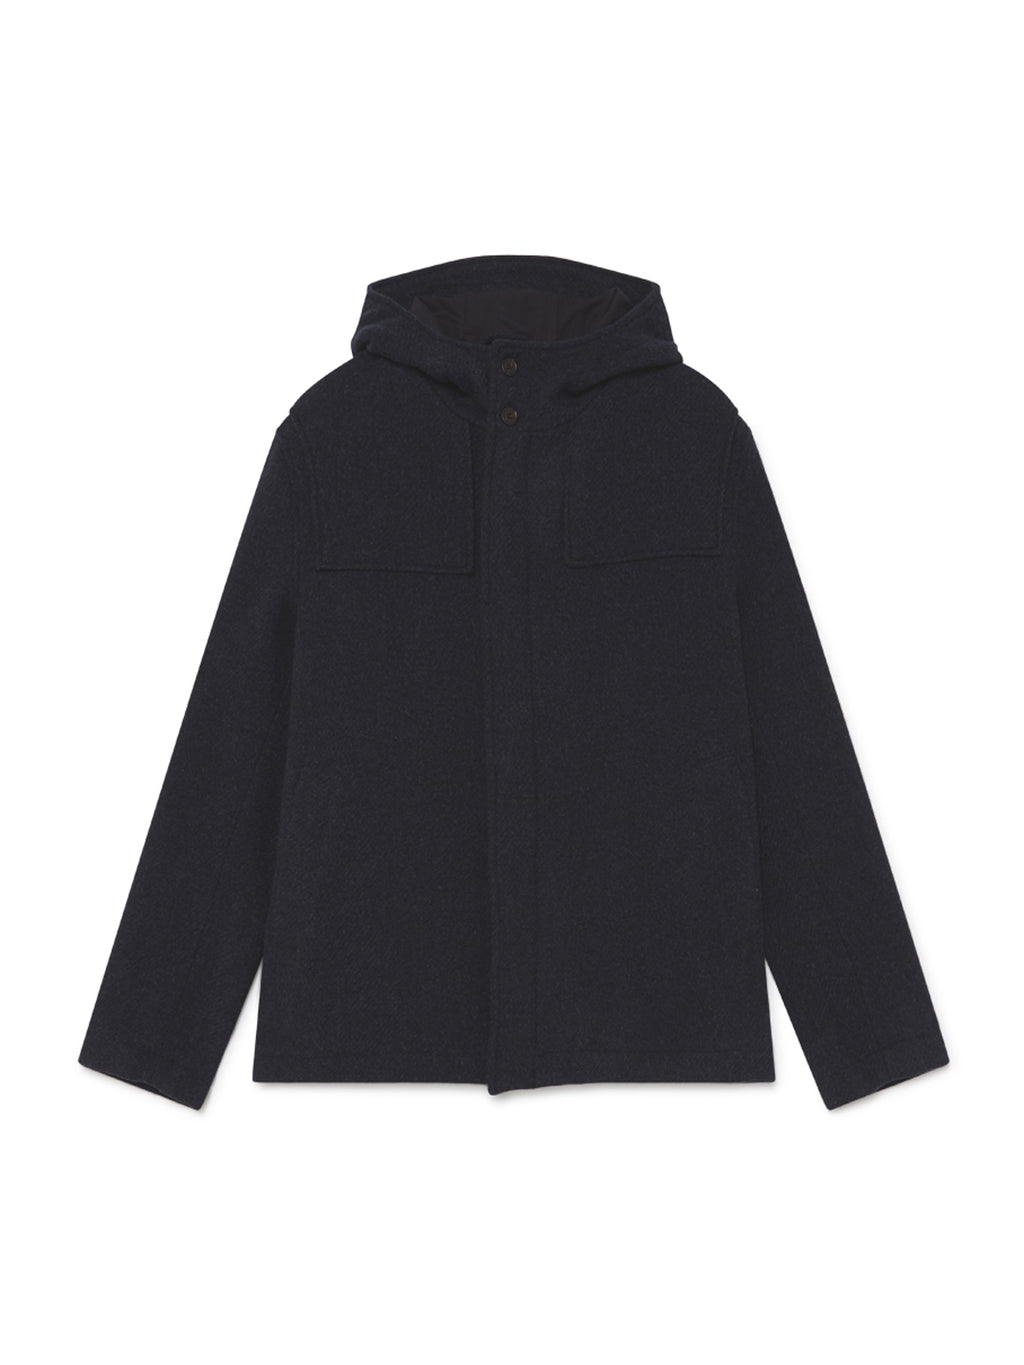 TWOTHIRDS Mens Jacket: Miquelon - Navy front